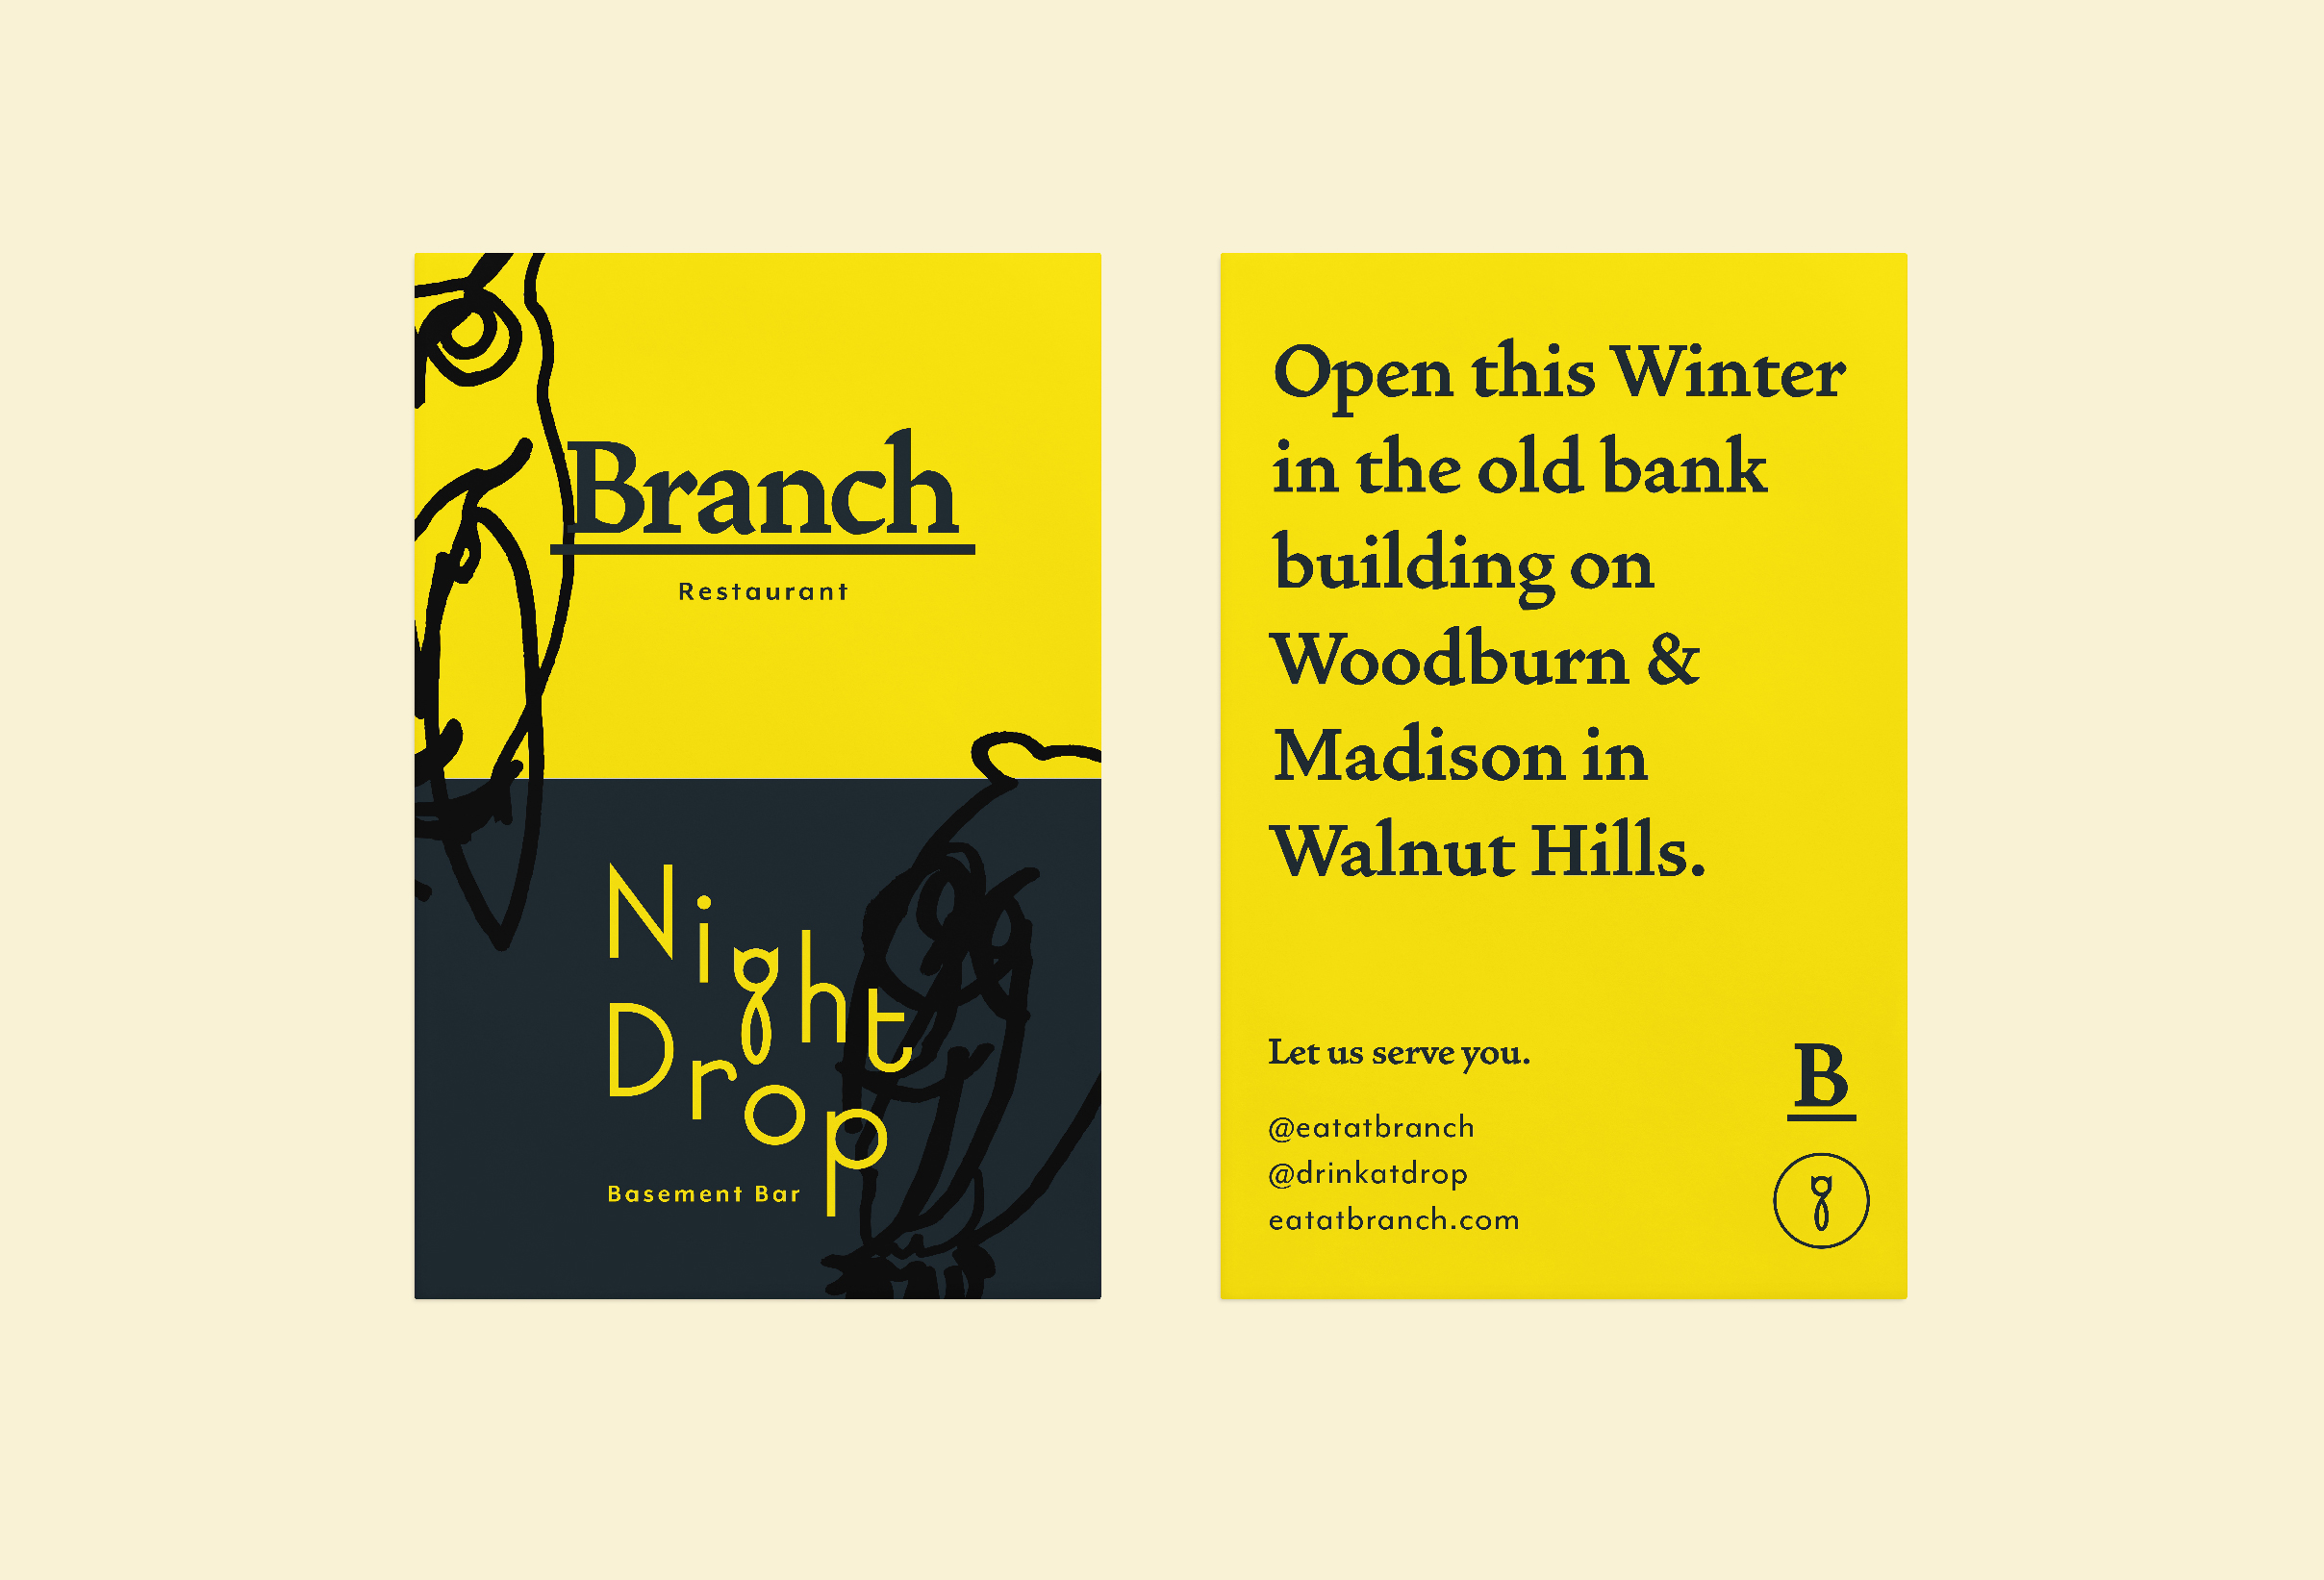 Announcement Card for Branch & Night Drop.